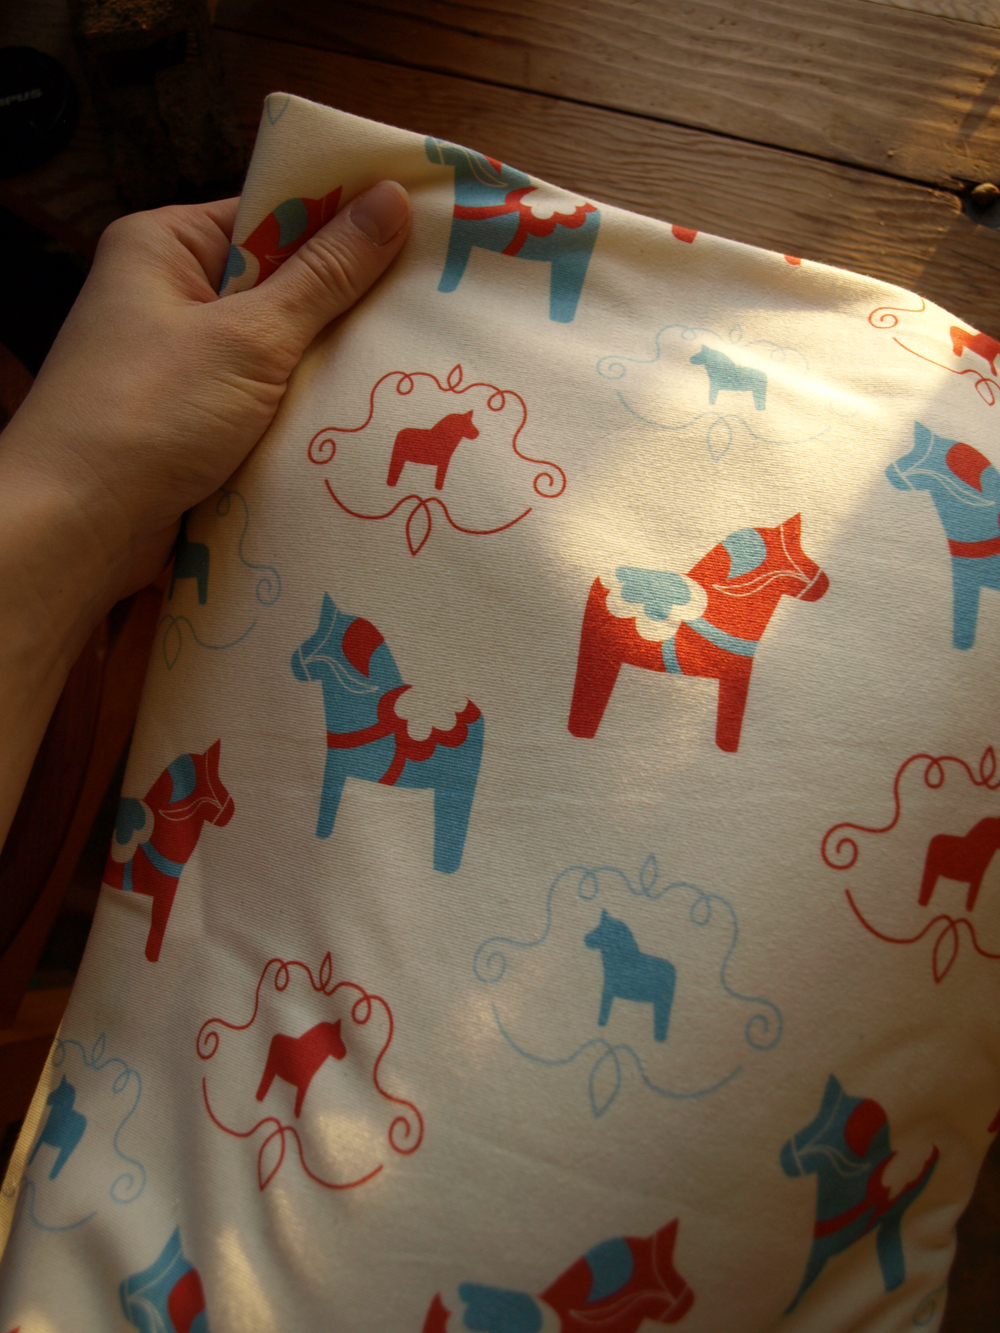 SO excited to get home yesterday evening and find one of my new fabrics has arrived from the printers. And this one, special for babies! Printed on Organic Cotton Jersey…. nursing blankets in the making!